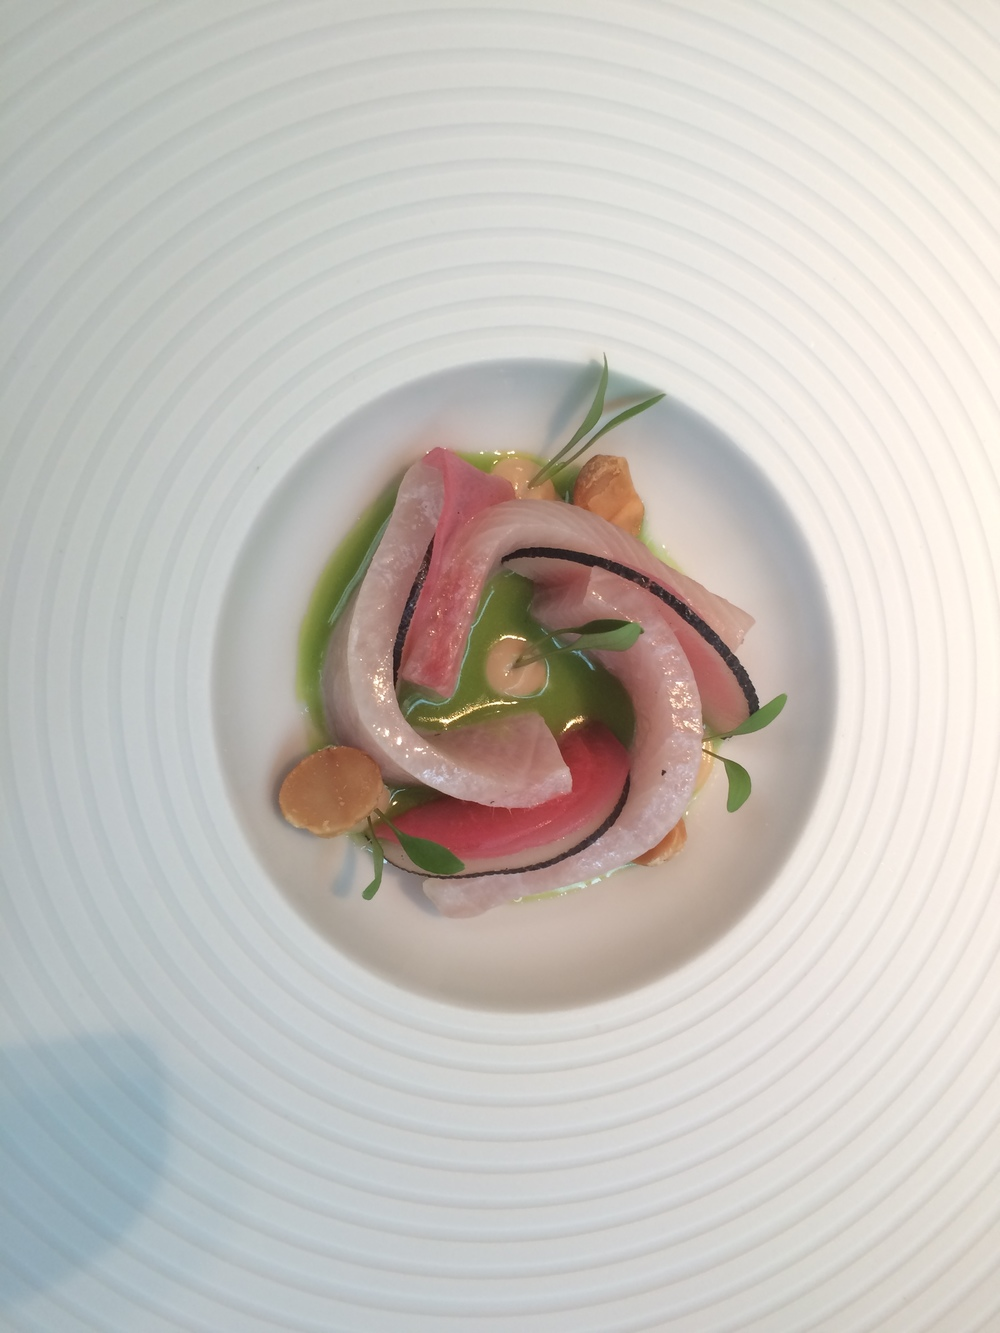 Ceviche of Yellow Fin Mackerel- Coriander and Radish.